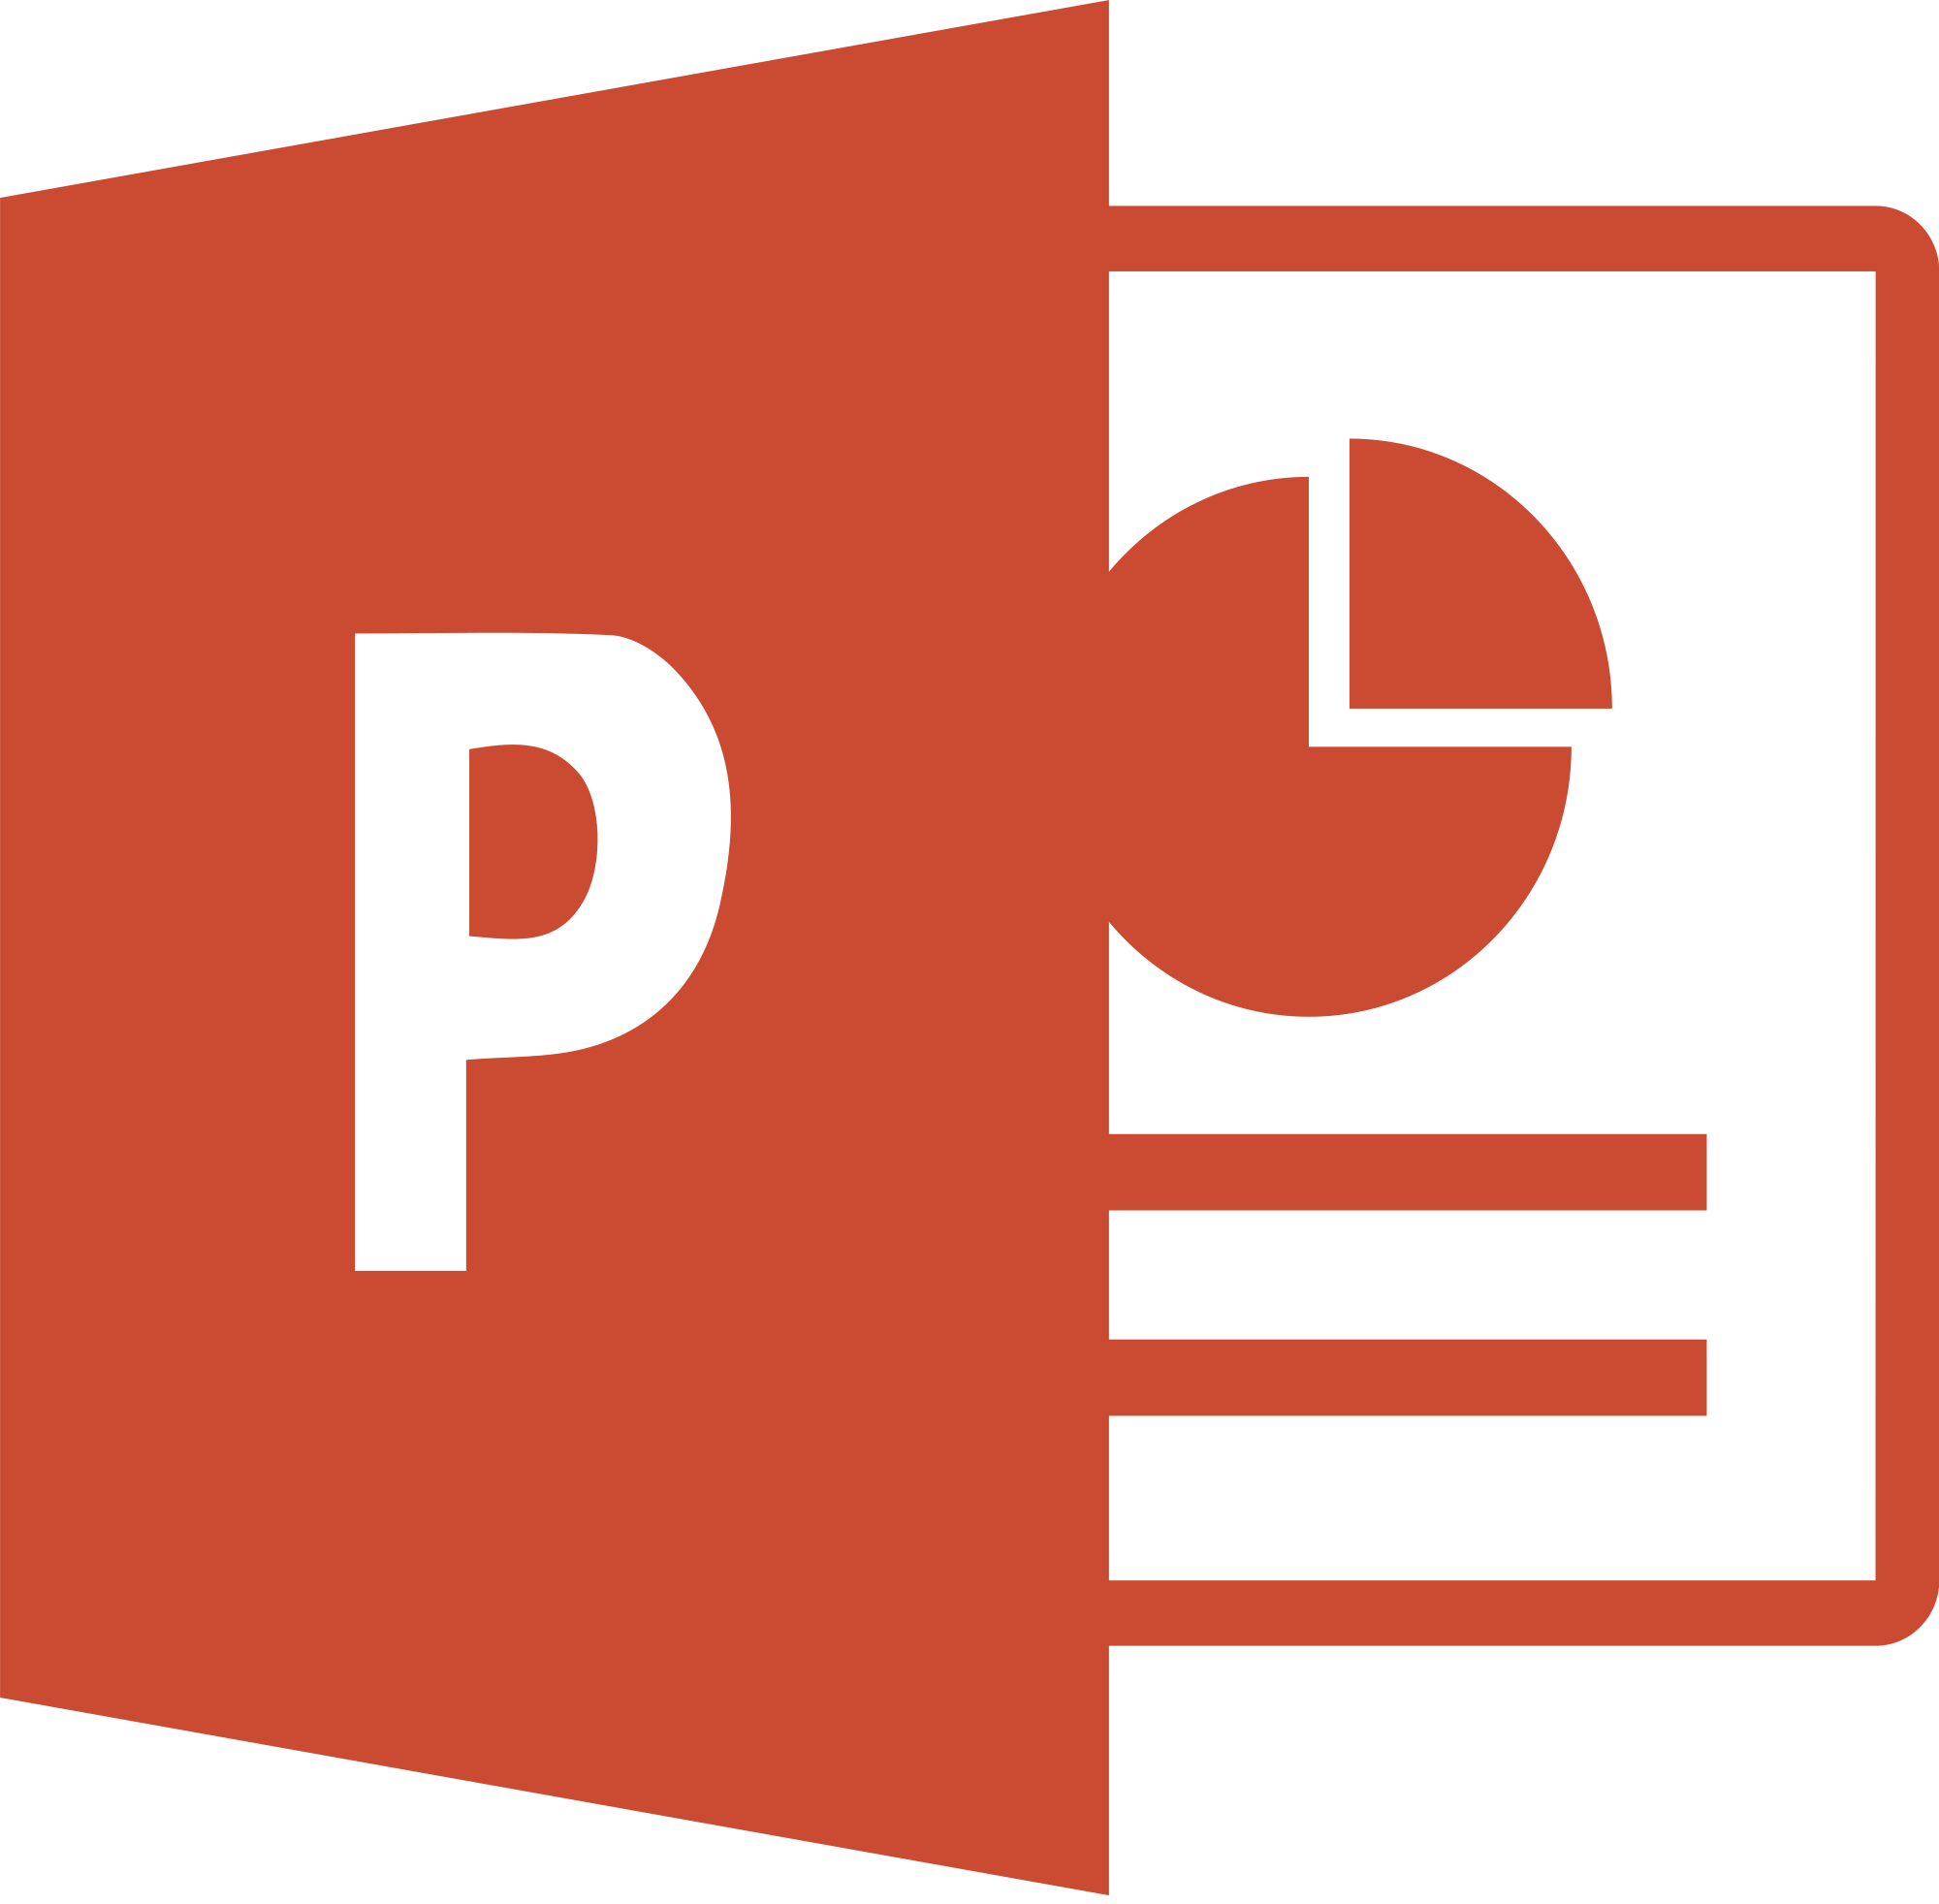 PowerPoint 2016: An Introduction $10.00